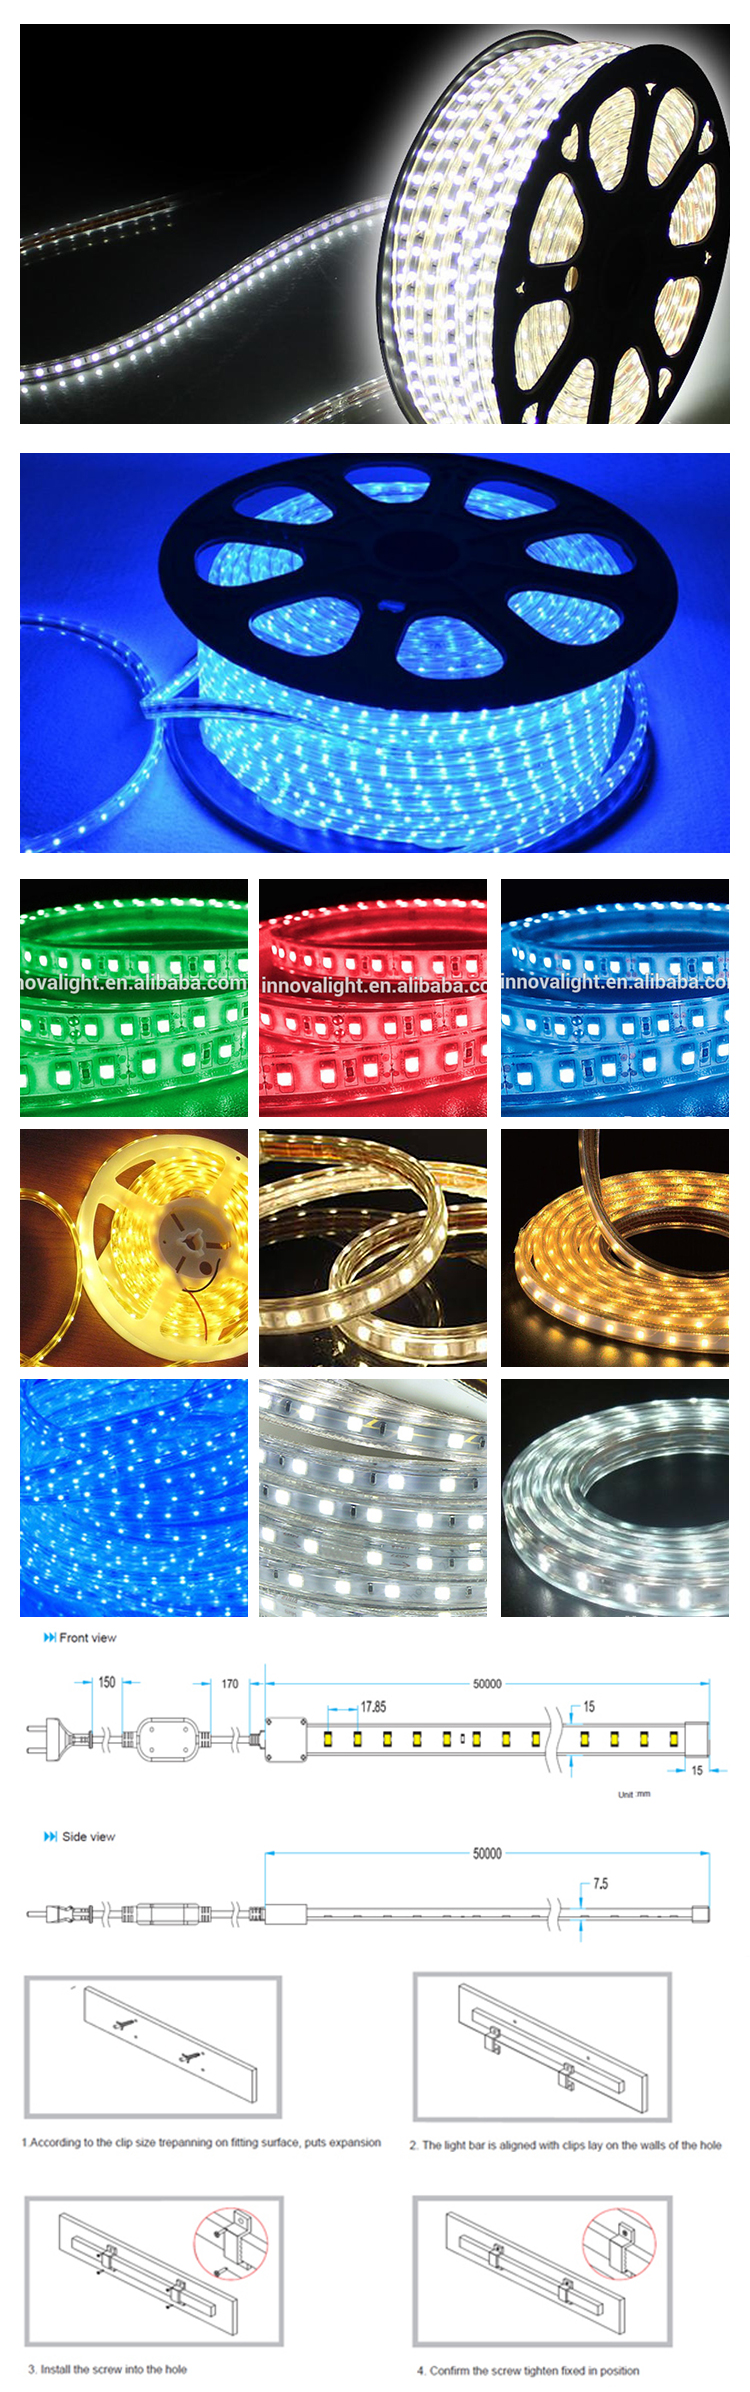 INNOVALIGTH SMD5050 LED STRIP 100M/ROLL LED STRIP LIGHT 220-240V